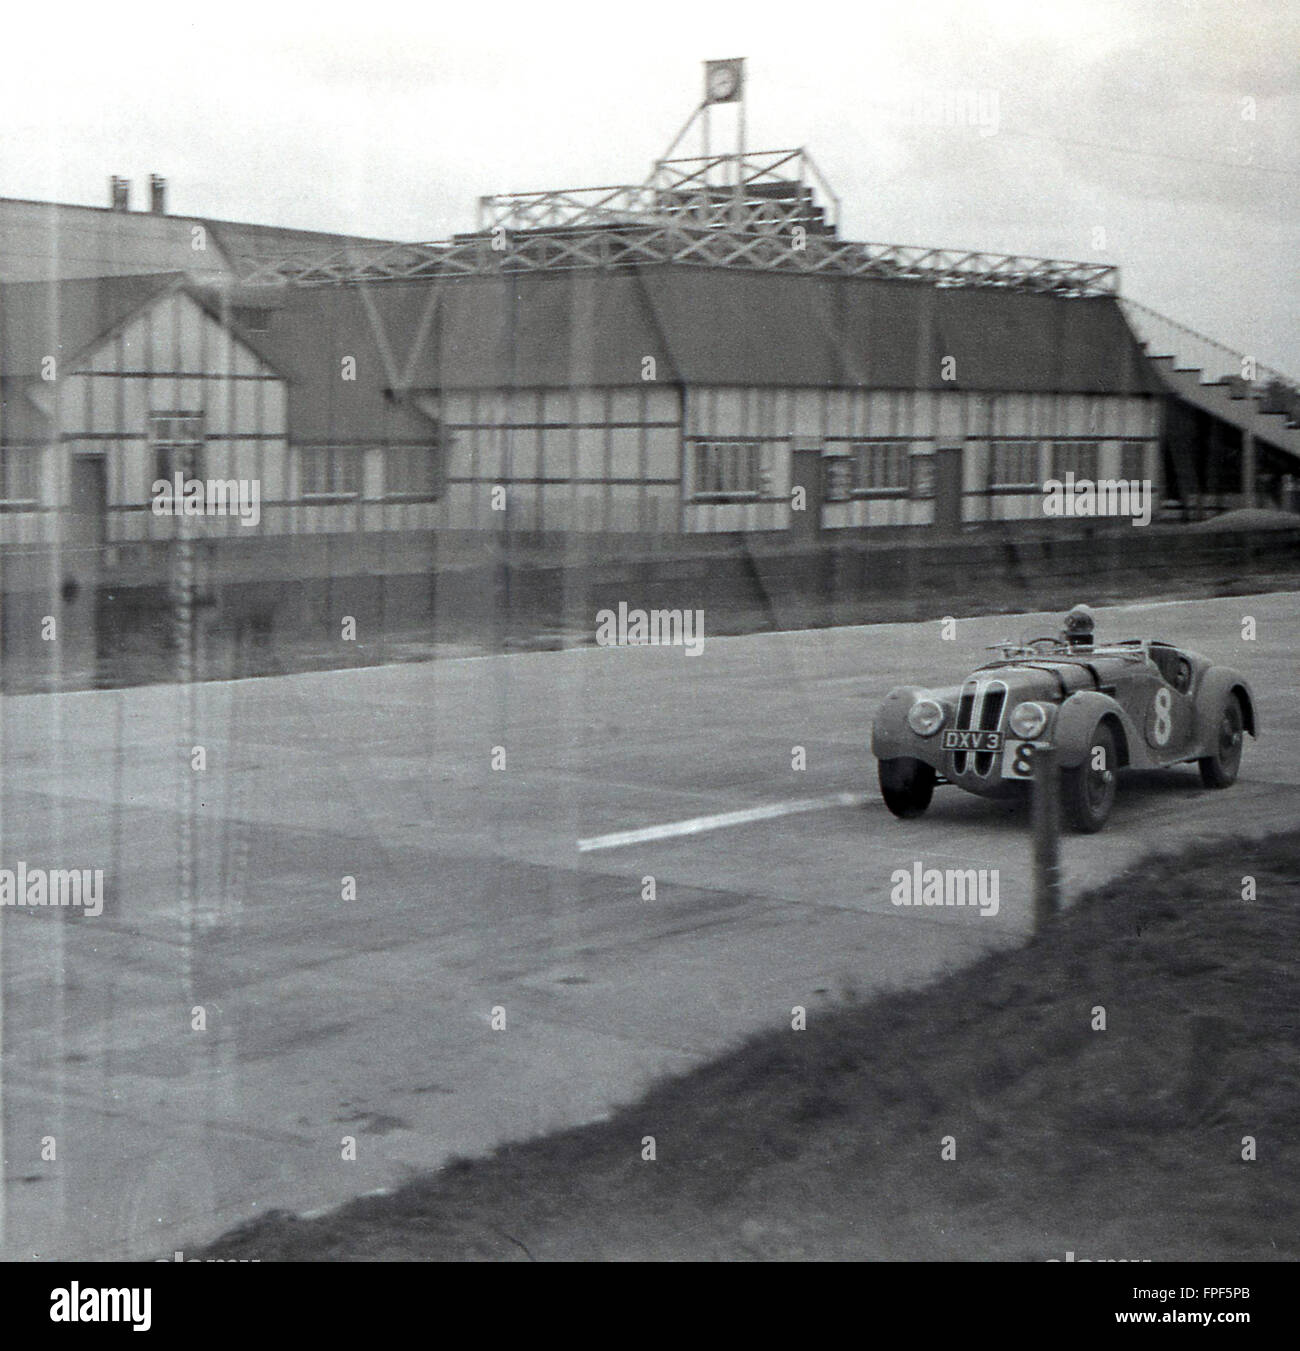 1930s historical, motor racing car goes round Brooklands race track, Weybridge, Surrey. Opened in 1907, the circuit - Stock Image